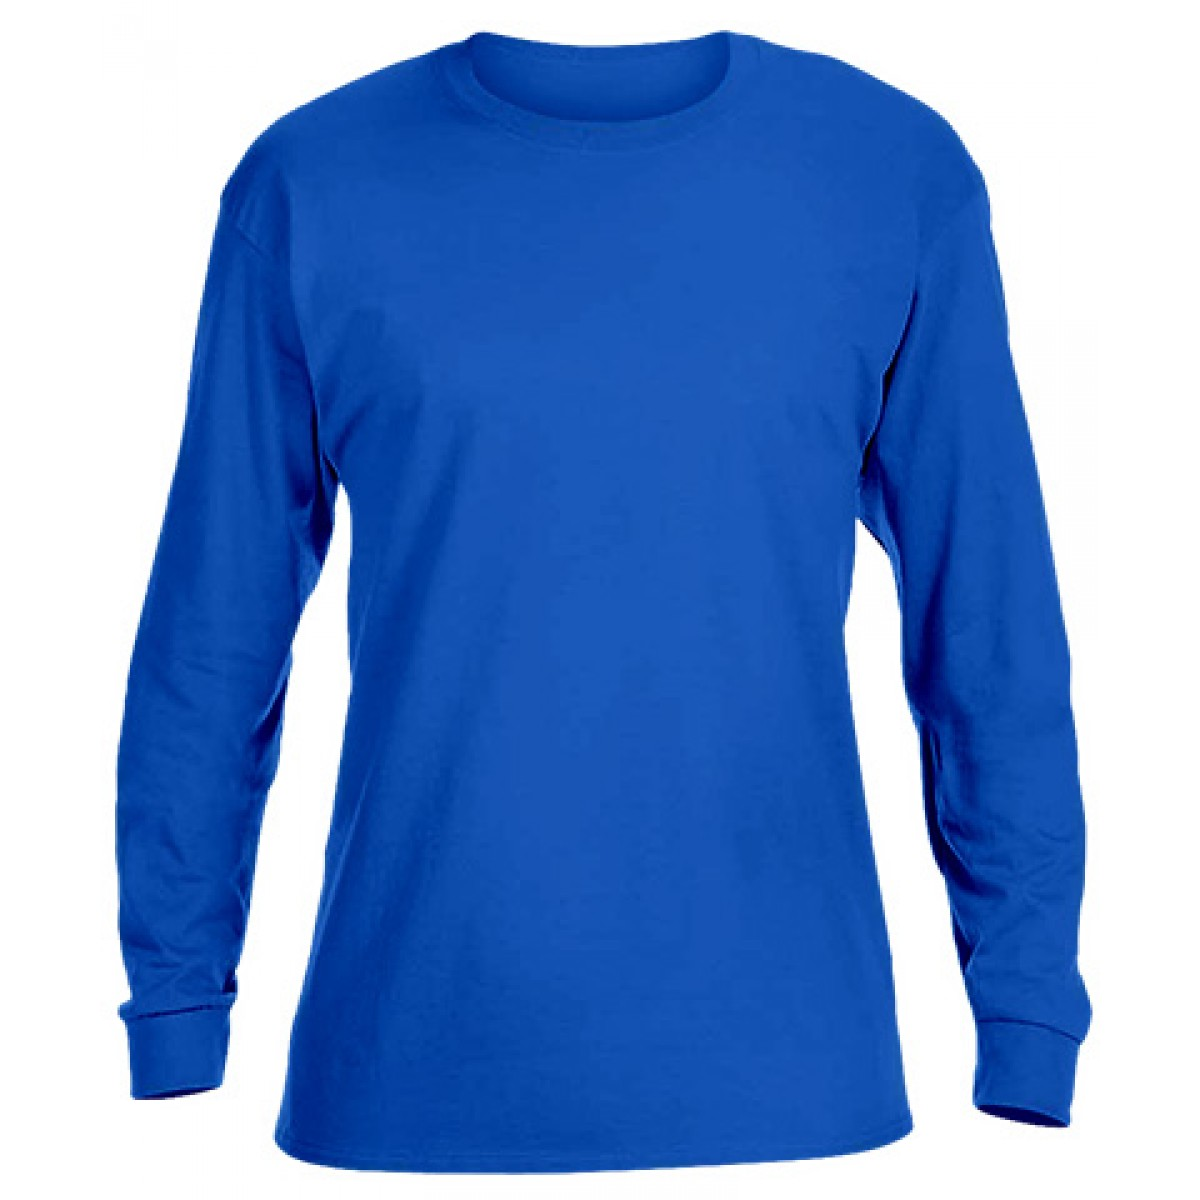 Basic Long Sleeve Crew Neck -Royal Blue-YS